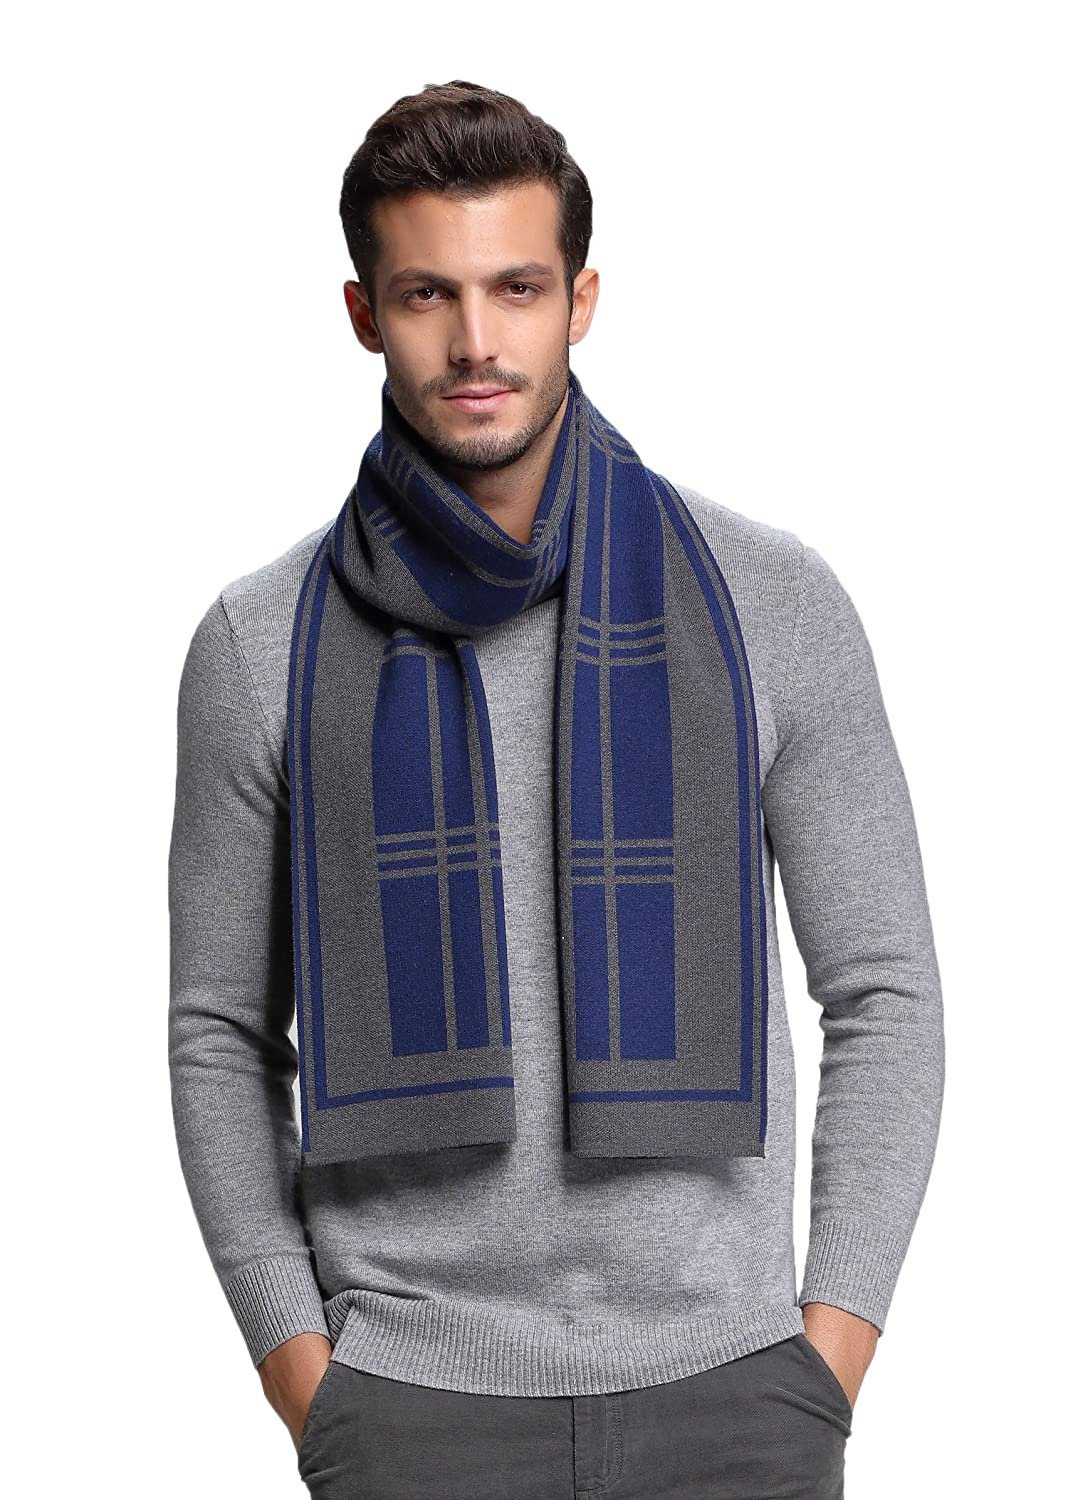 RIONA Men's British Style Wool Blend Knitted Scarf - Winter Soft Warm Neckwear RIW8047Black